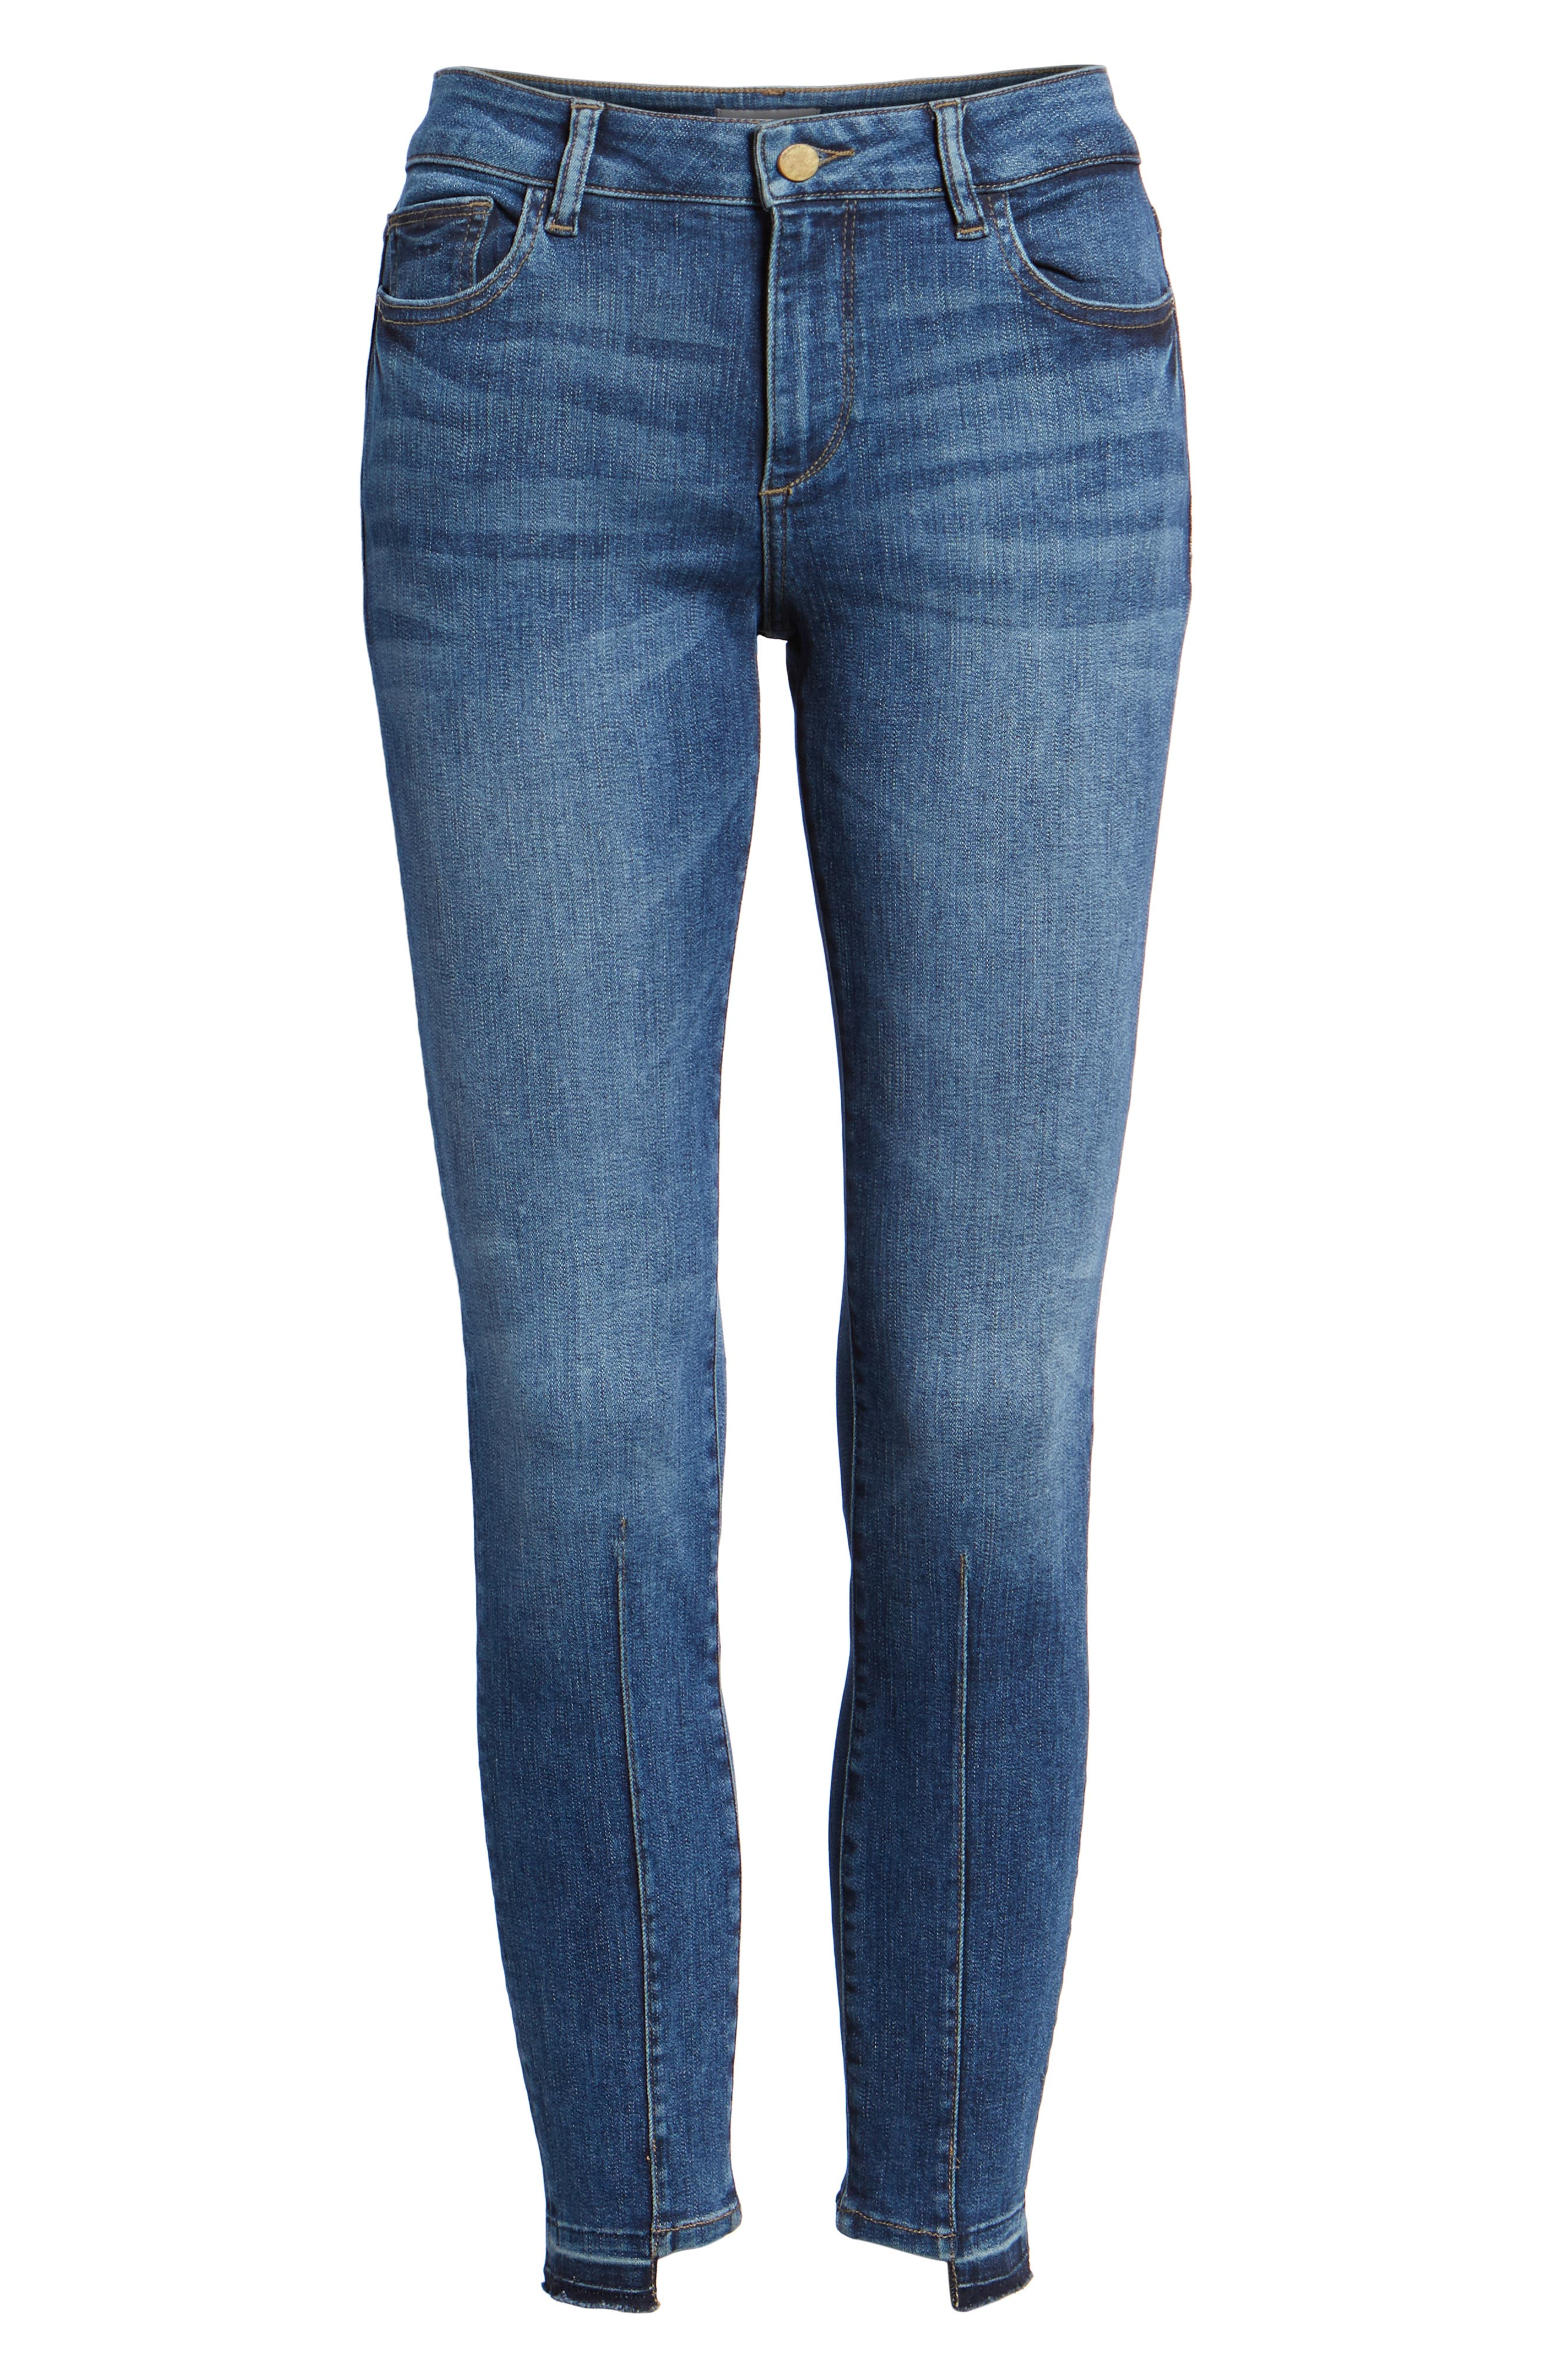 Florence Instasculpt Crop Skinny Jeans,                             Alternate thumbnail 7, color,                             KODY